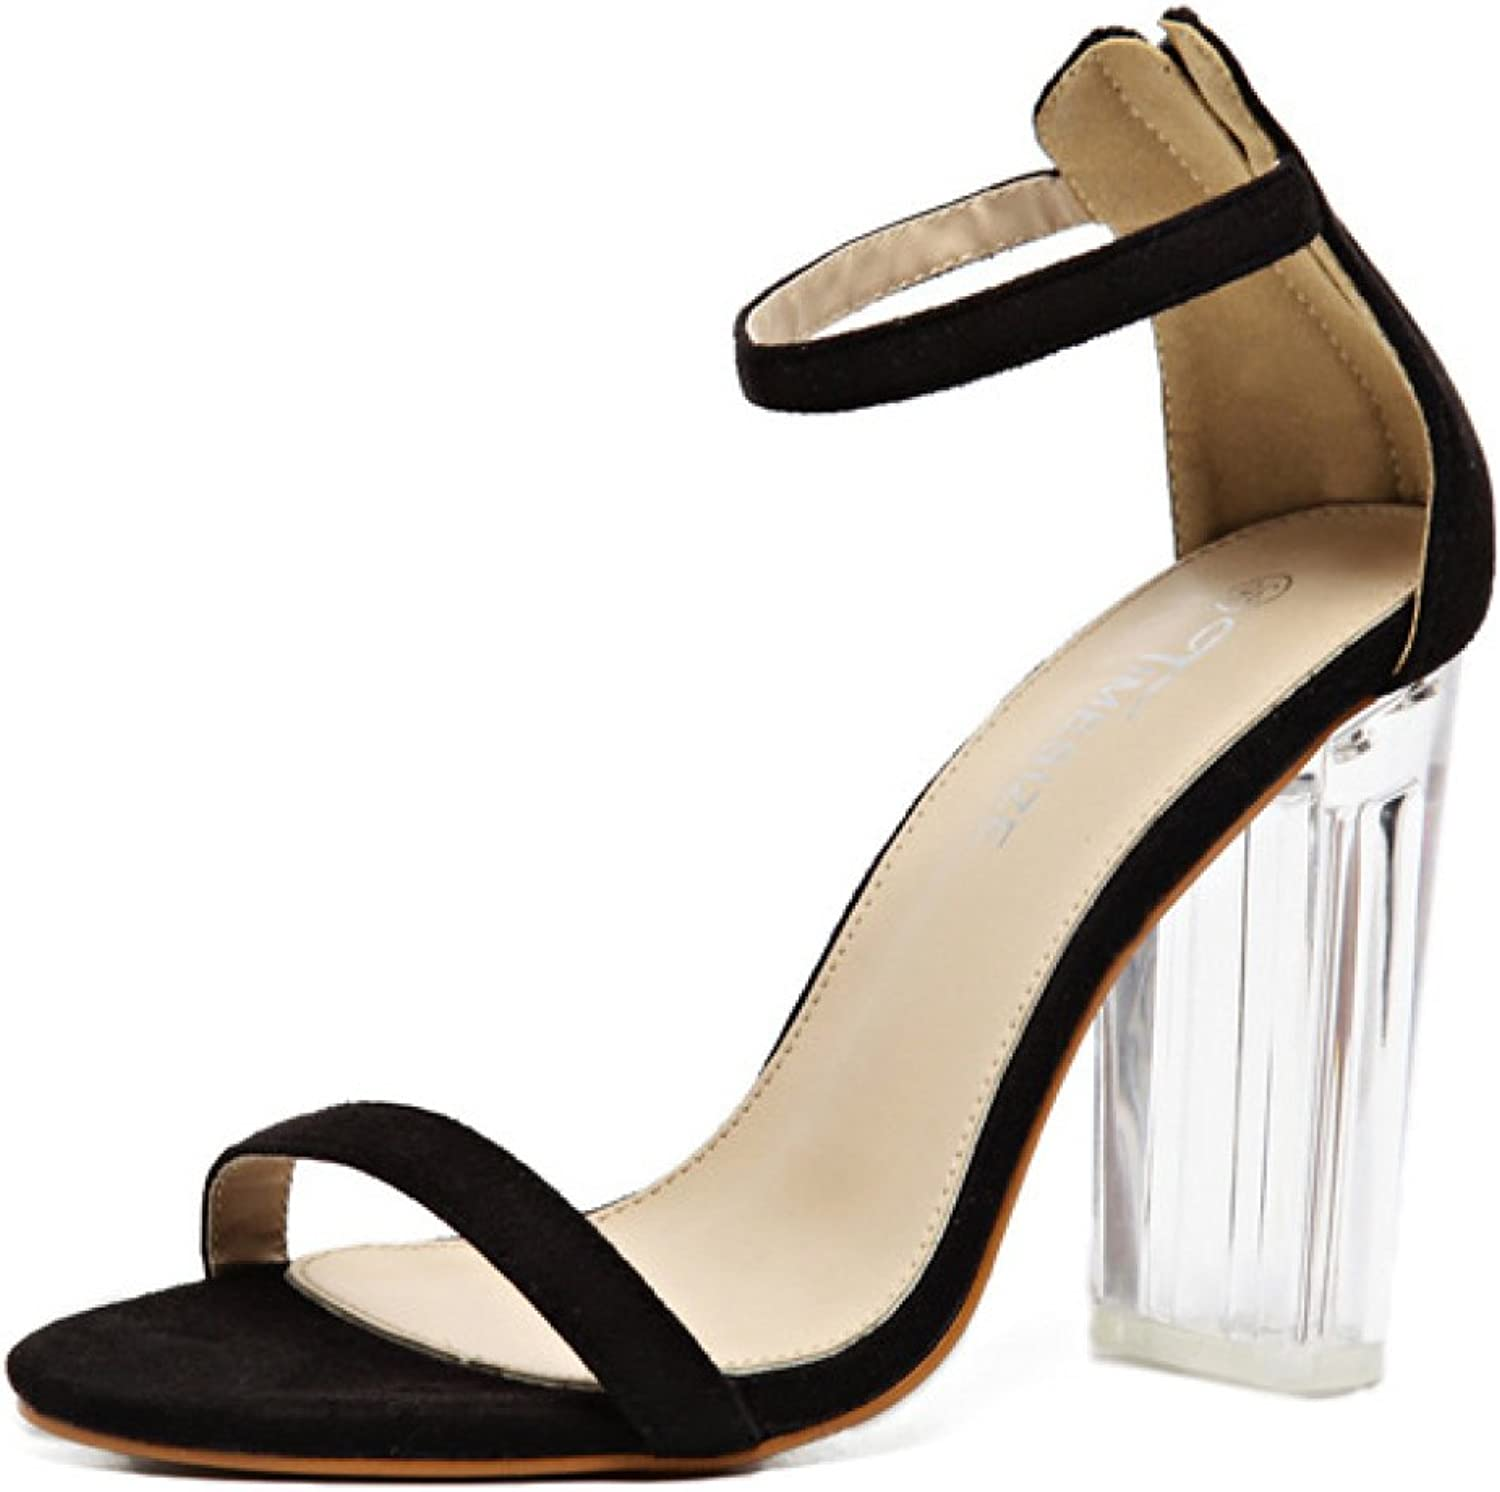 Women's High Heel Transparent Heel Strappy Summer Ankle Strap shoes Ladies Party Wedding Prom Sandals,Black-EU 37=6.5B(M) US